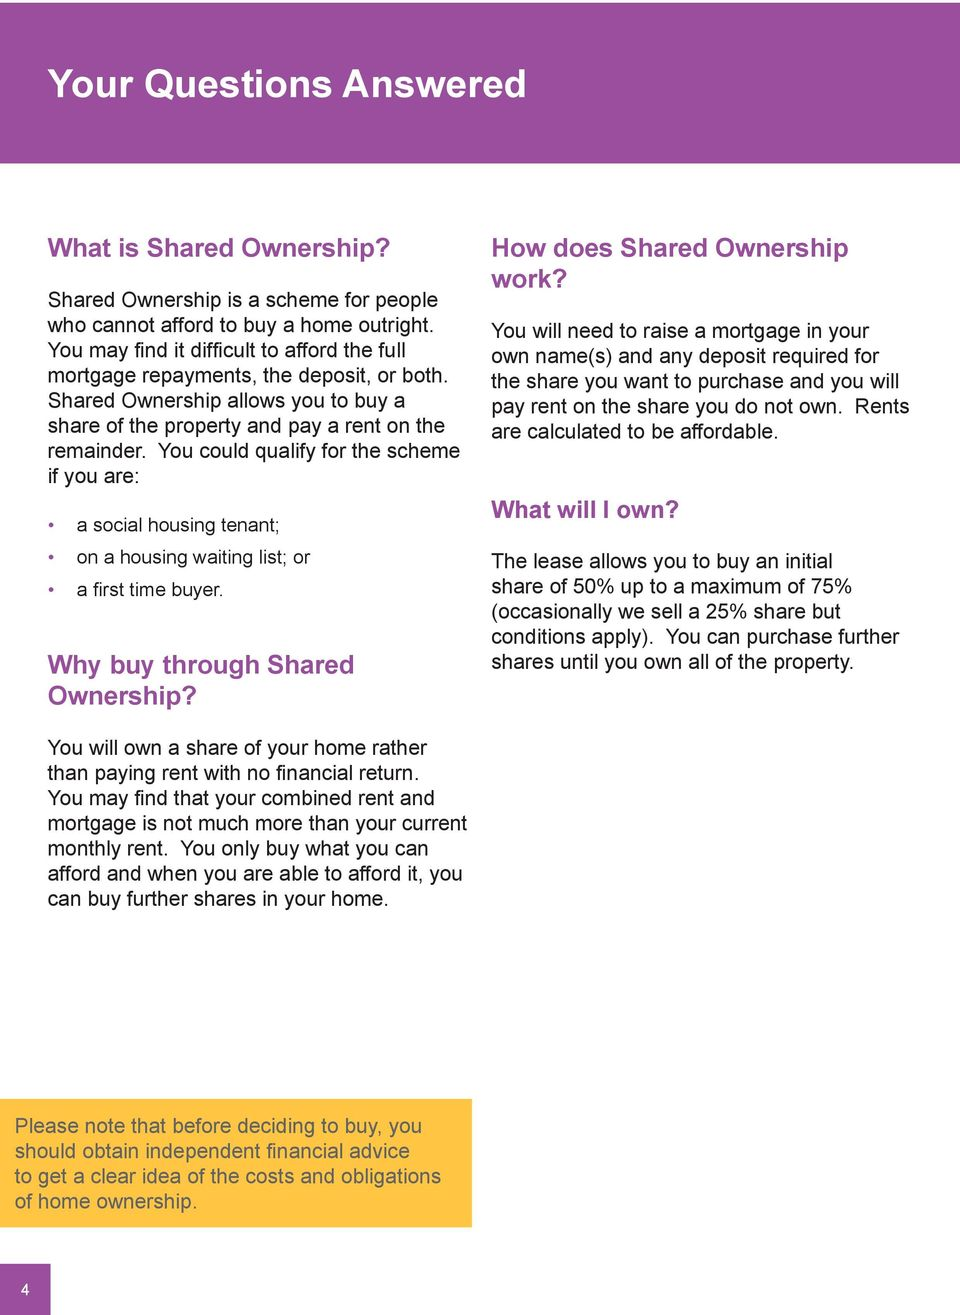 You could qualify for the scheme if you are: a social housing tenant; on a housing waiting list; or a first time buyer. Why buy through Shared Ownership? How does Shared Ownership work?